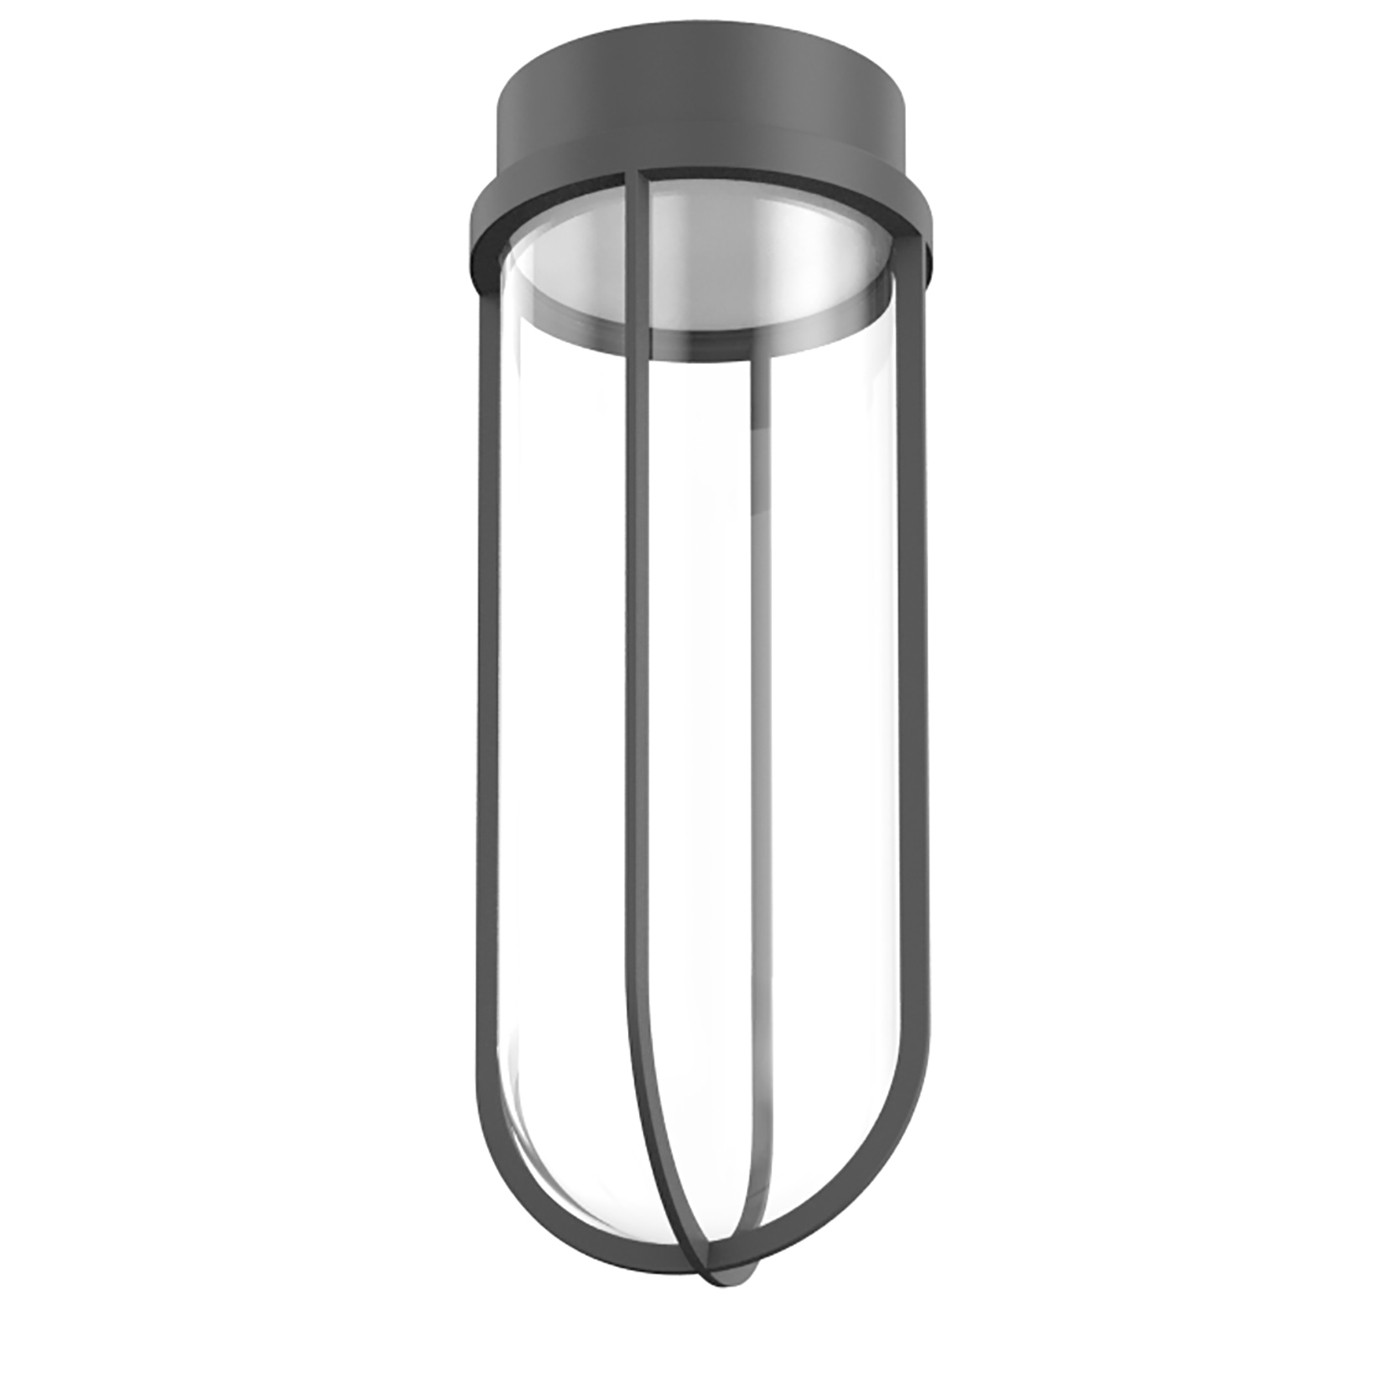 Flos In Vitro Ceiling, 2700K